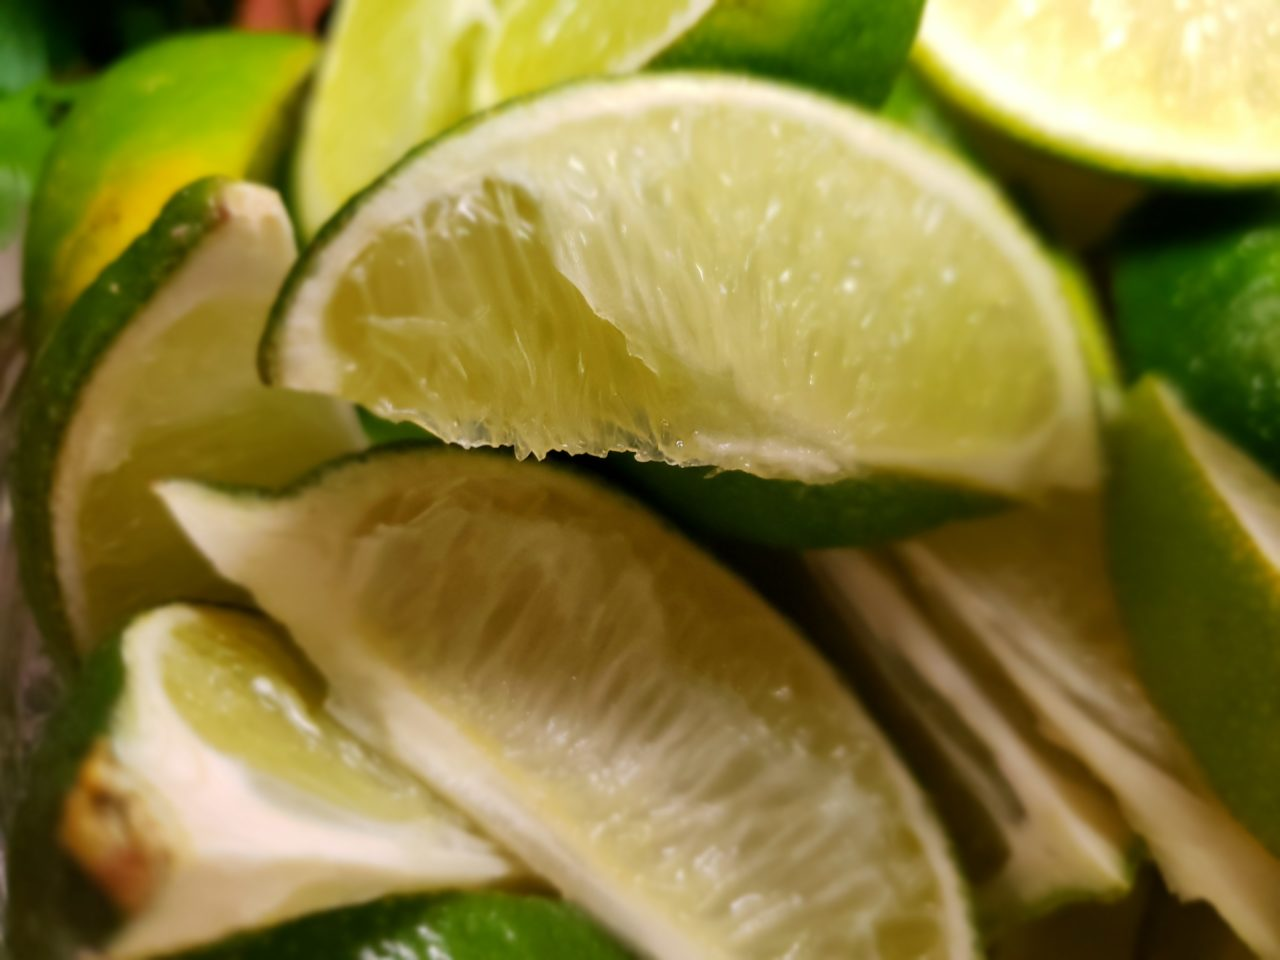 Zesty lime for specials